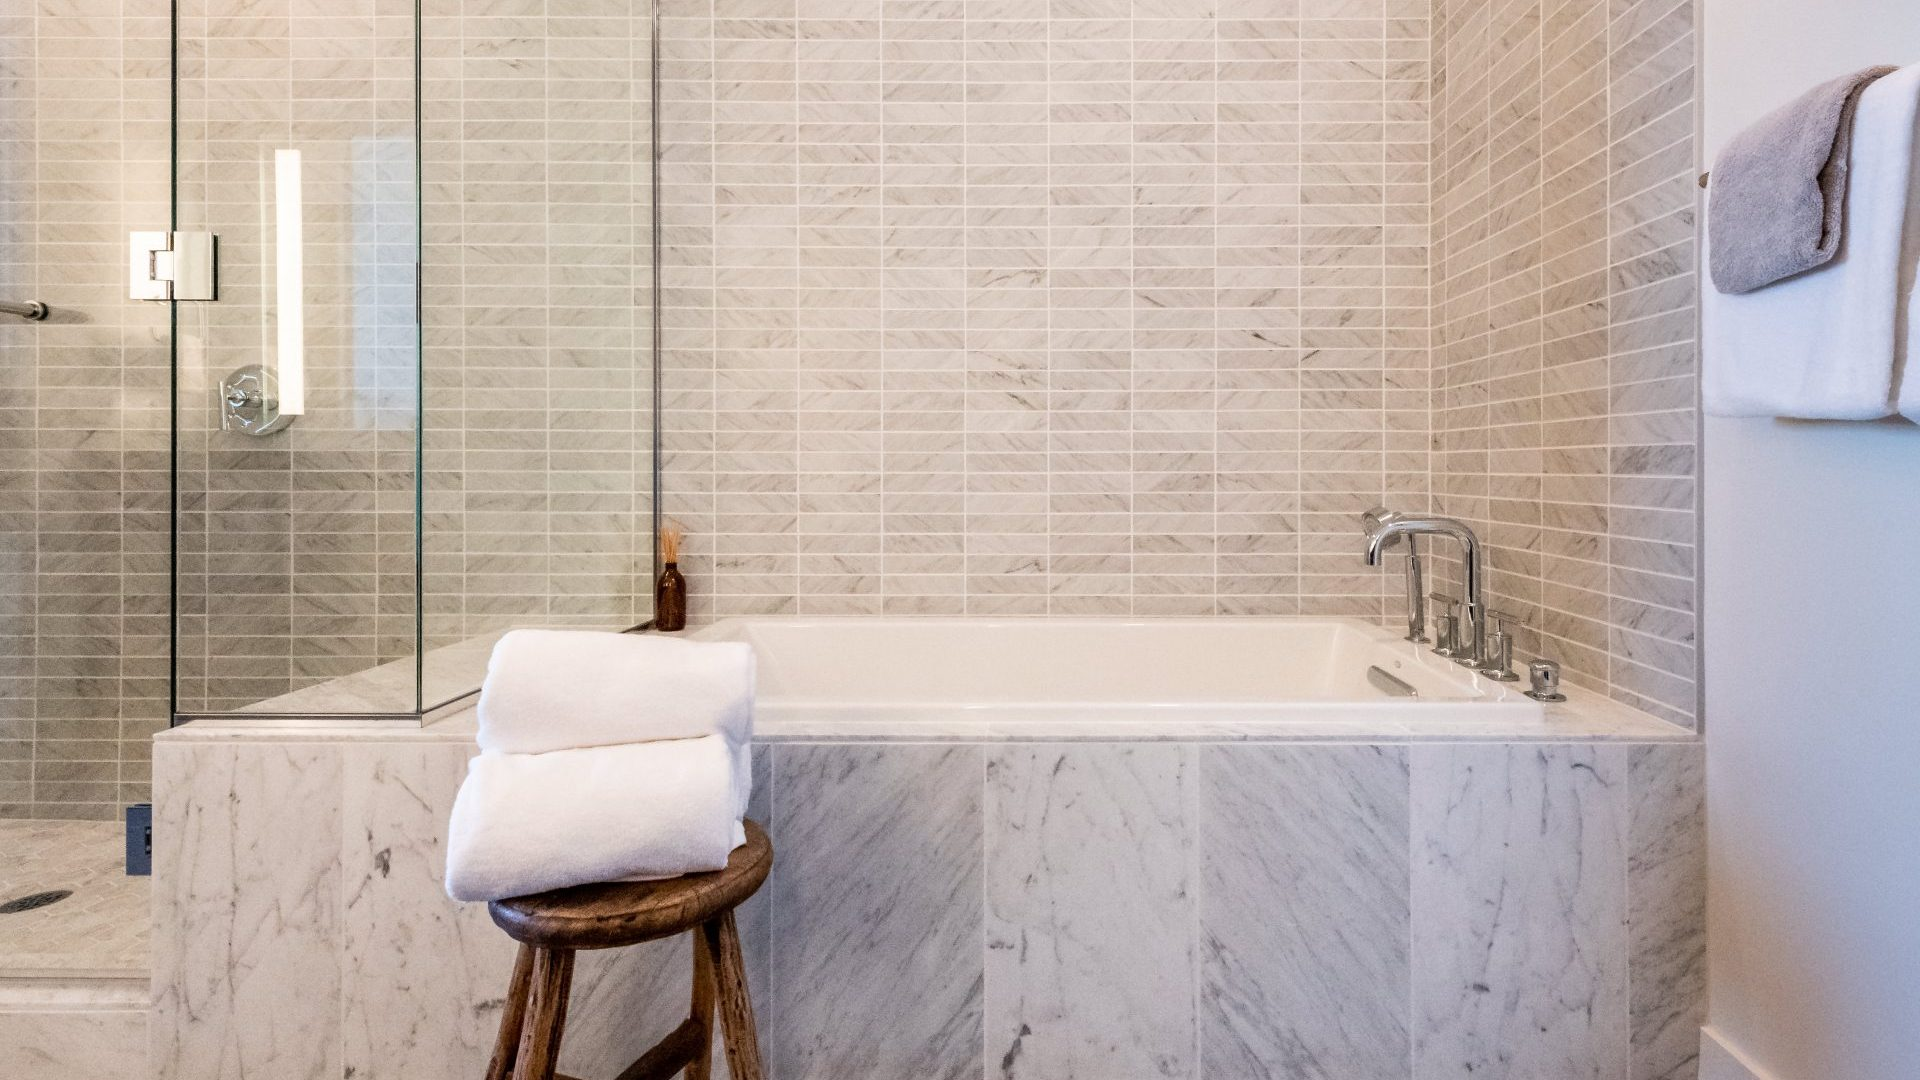 Luxury Soaking Tubs At Arrivé Apartments in Seattle, WA